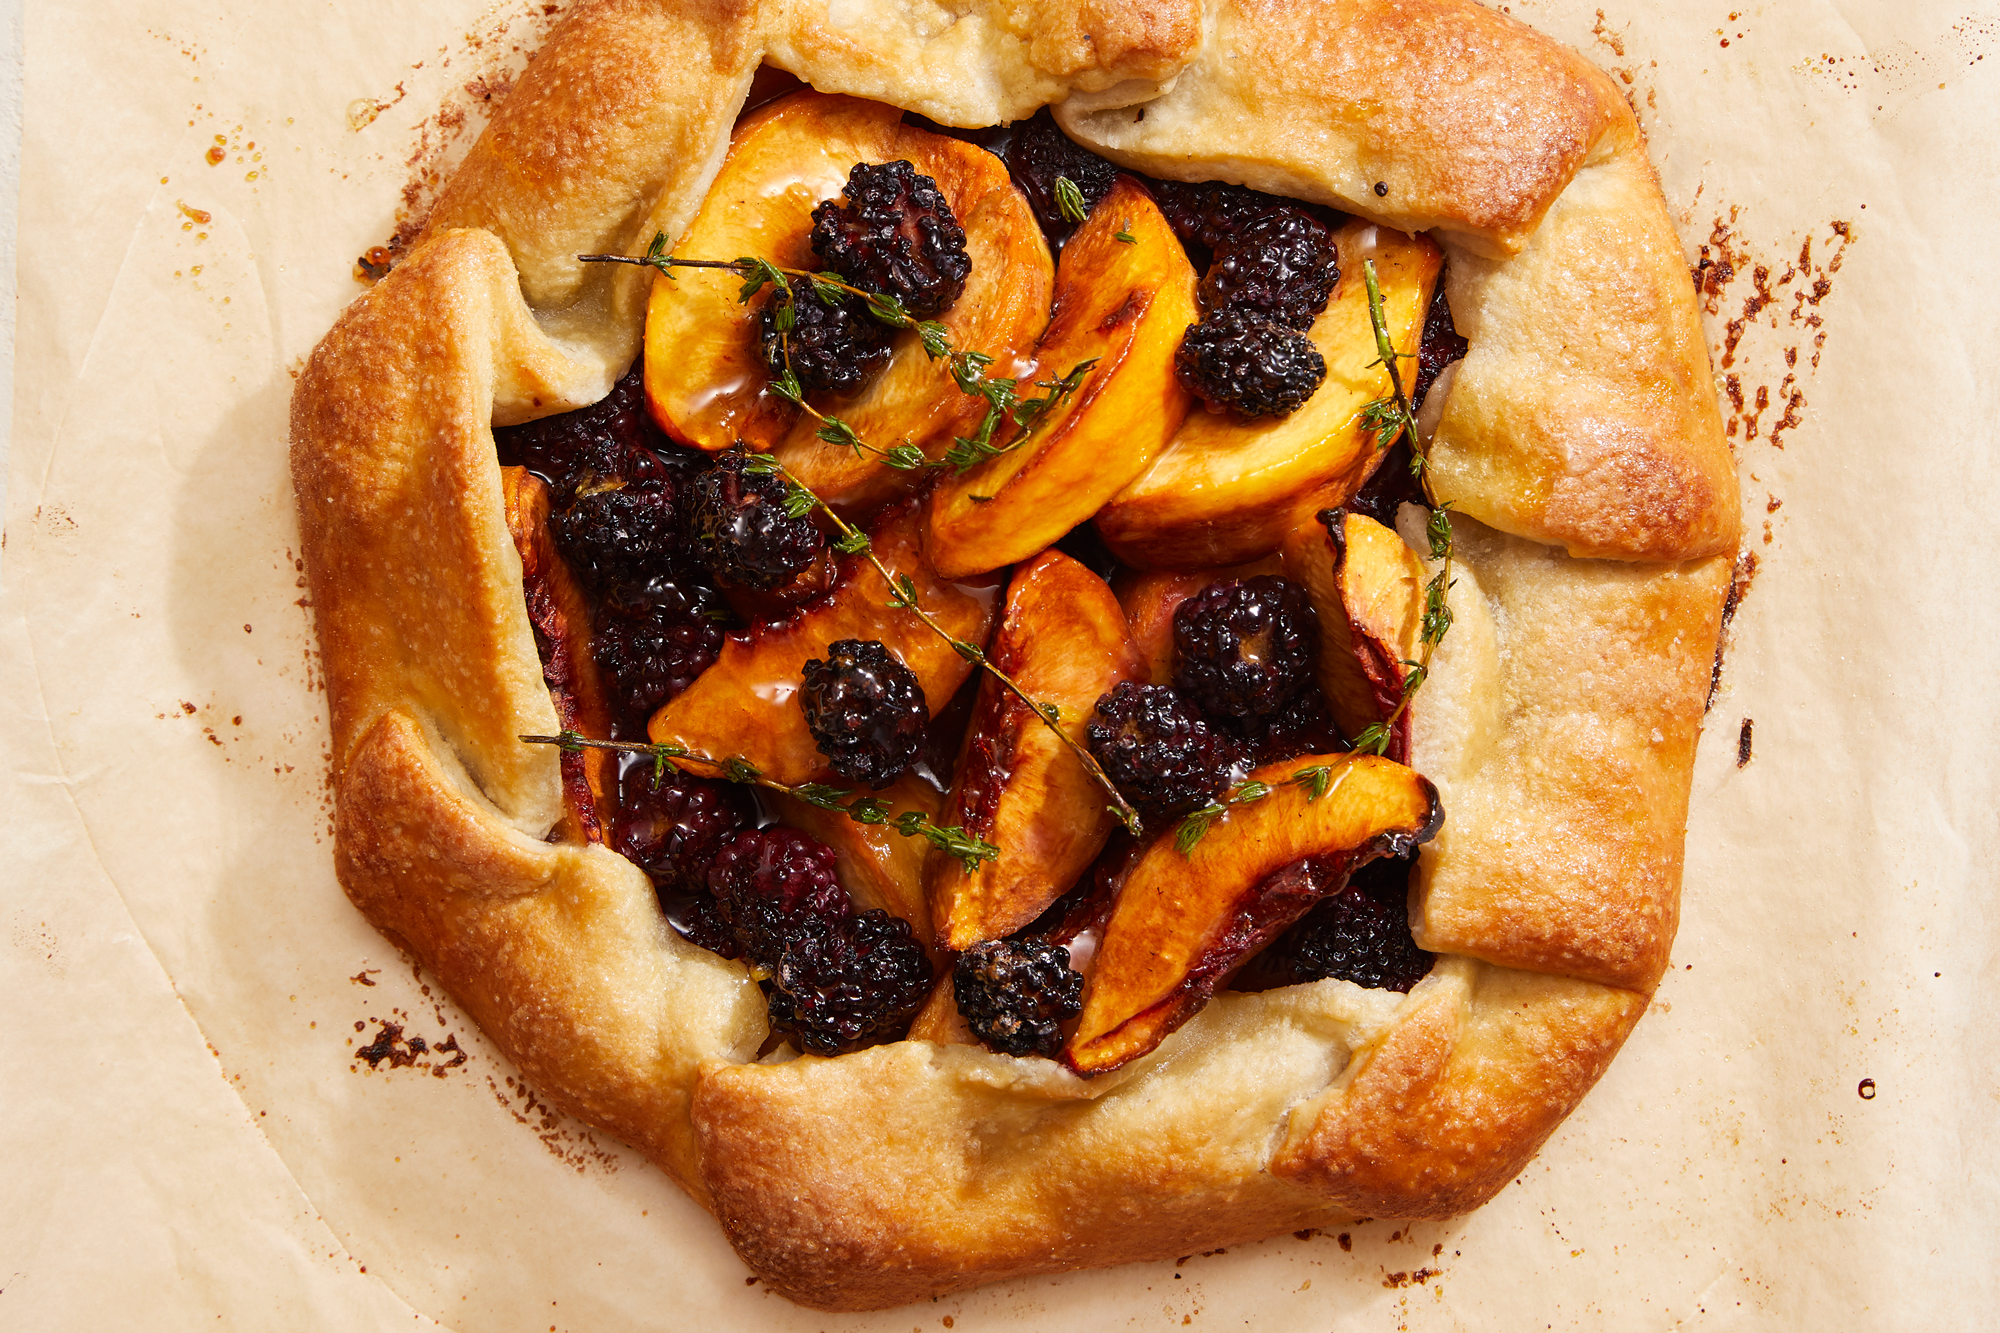 Summer Peach and Blackberry Galette Recipe